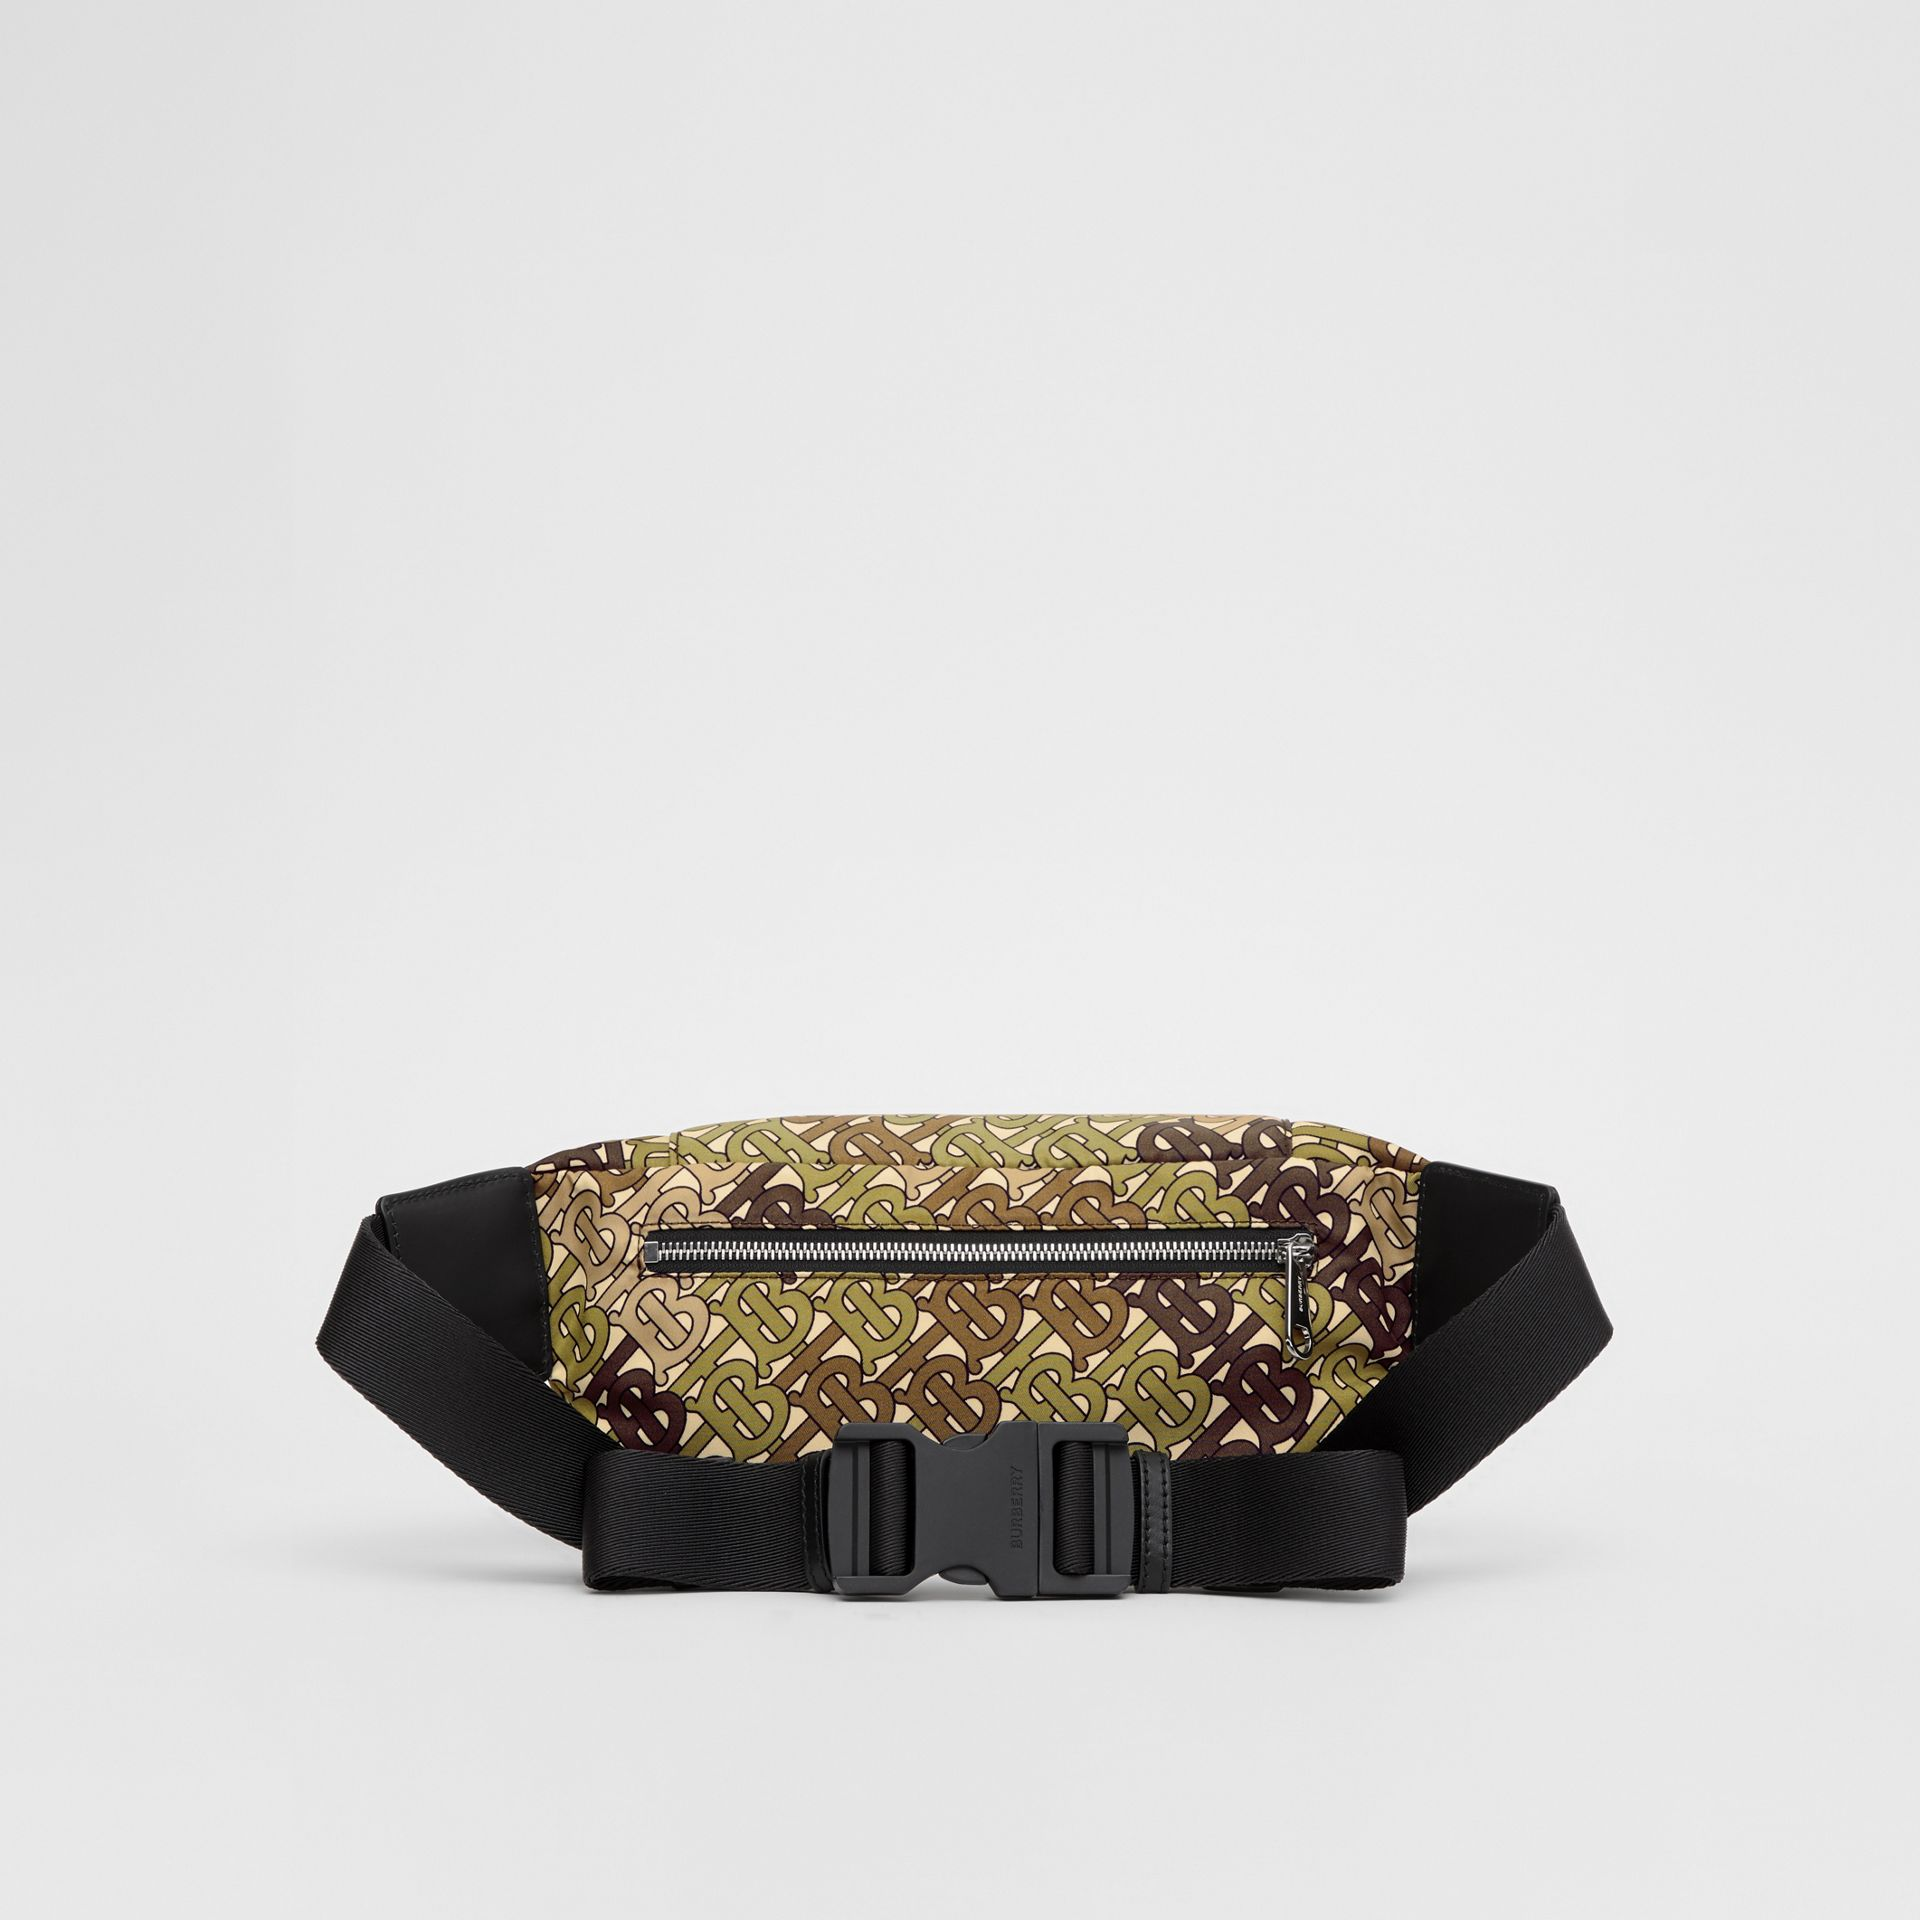 Medium Monogram Print Bum Bag in Khaki Green | Burberry - gallery image 5